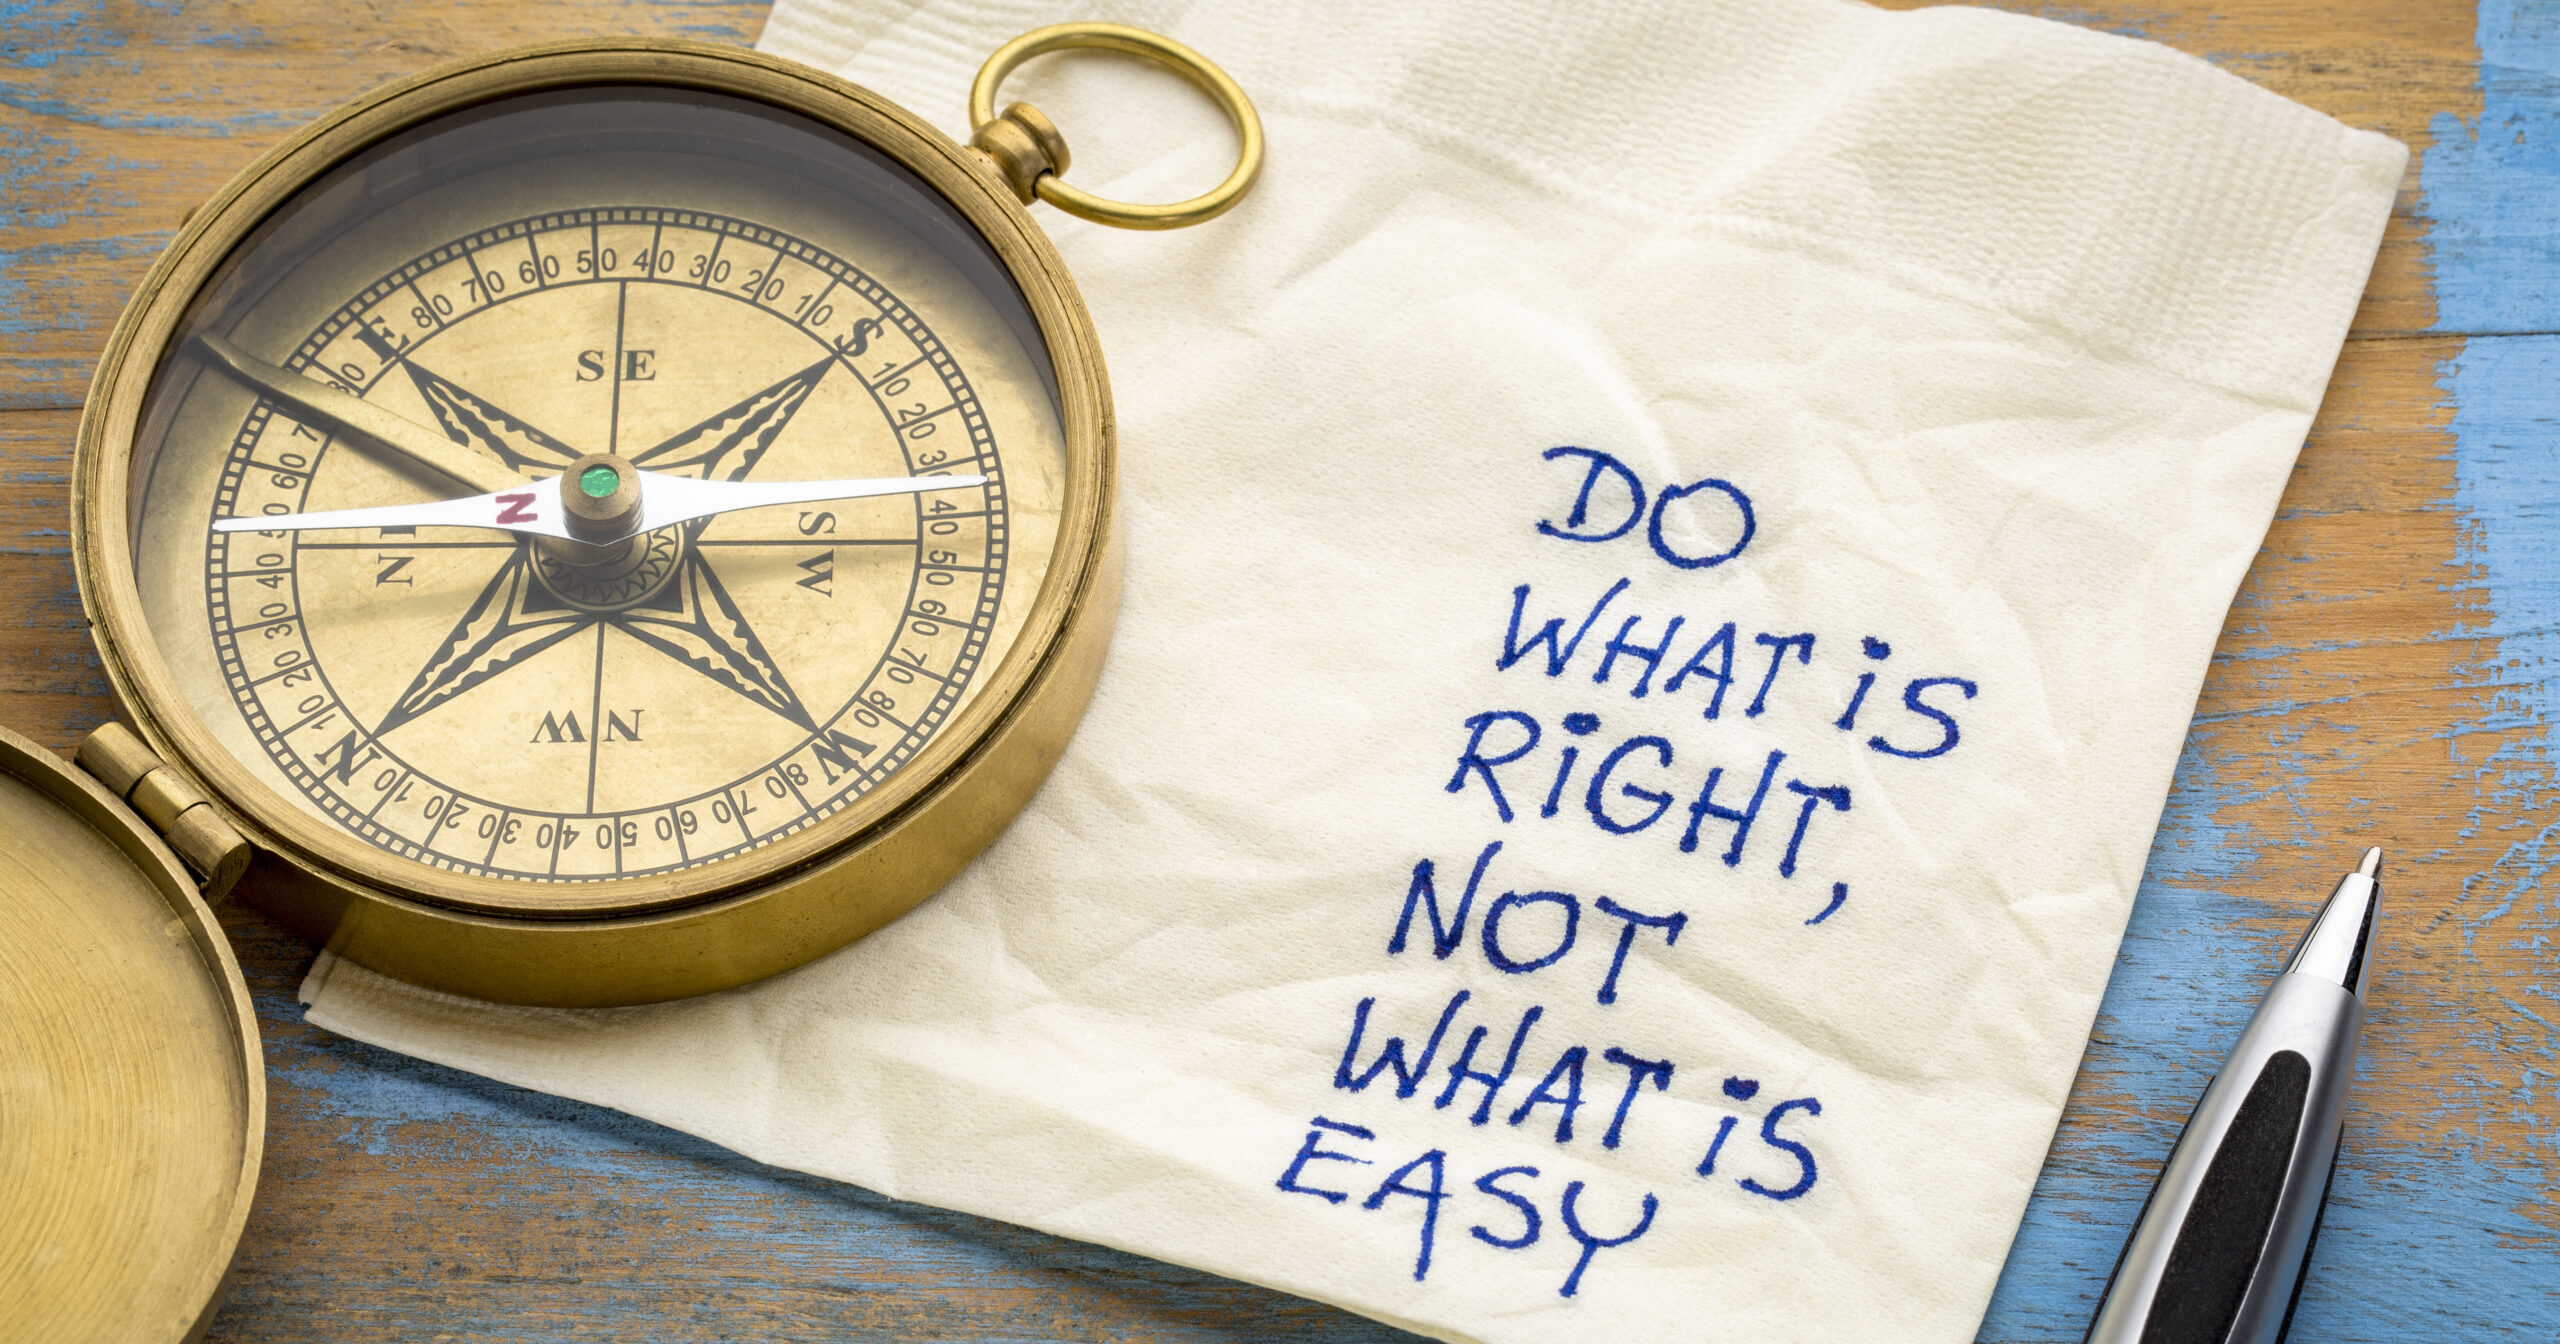 Ethical Research - Do What Is Right Not What is Easy